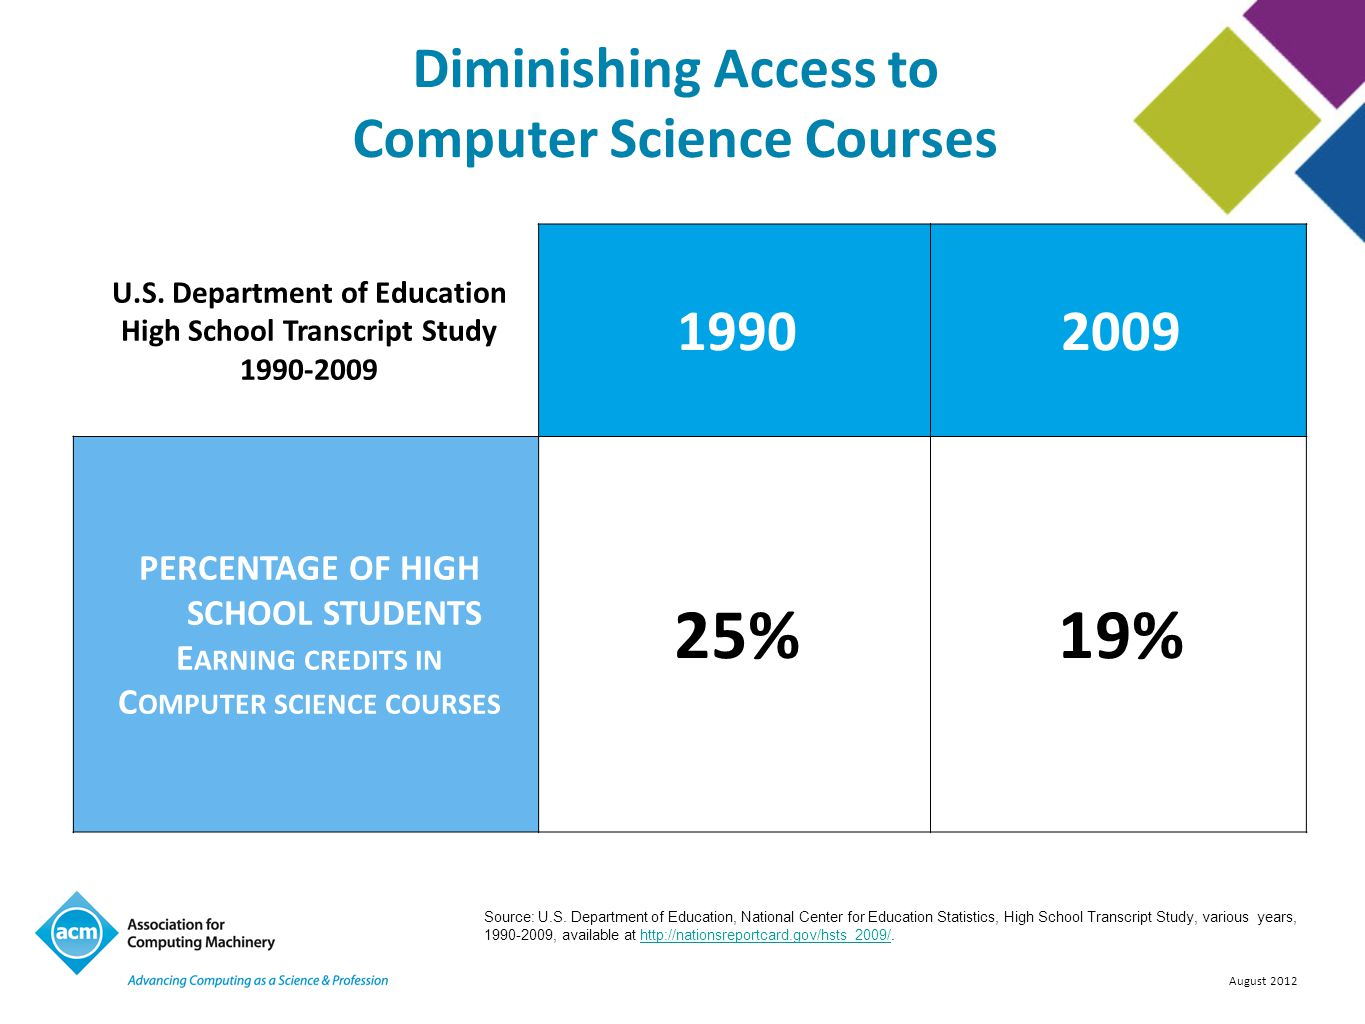 Diminishing Access to Computer Science Courses